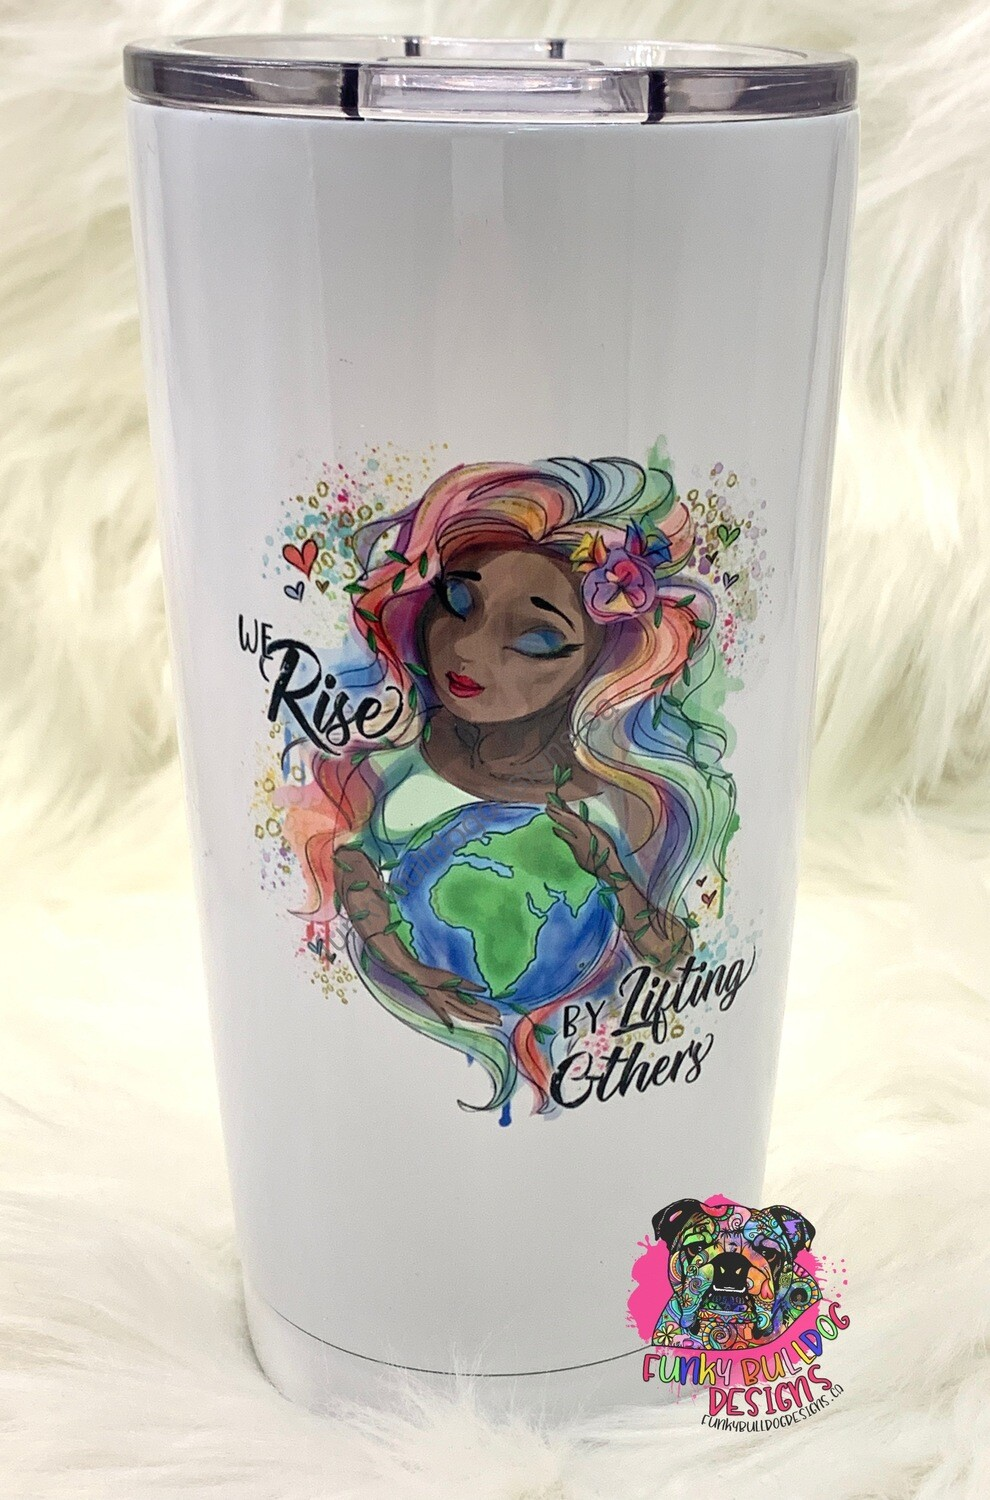 20oz Stainless Steel - We Rise by Lifting Others